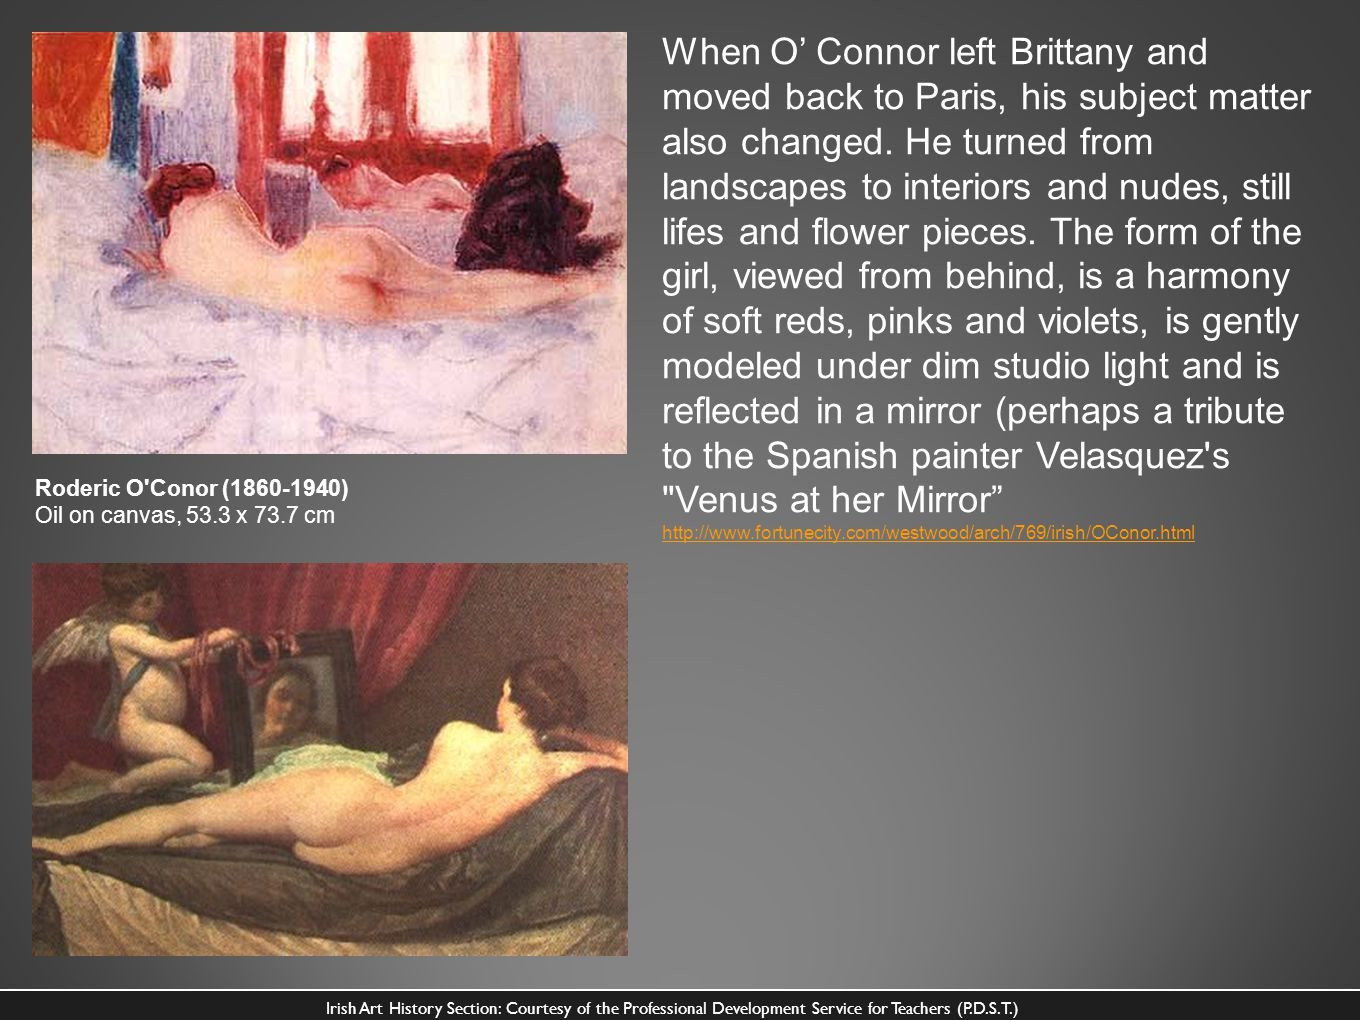 When O' Connor left Brittany and moved back to Paris, his subject matter also changed. He turned from landscapes to interiors and nudes, still lifes and flower pieces. The form of the girl, viewed from behind, is a harmony of soft reds, pinks and violets, is gently modeled under dim studio light and is reflected in a mirror (perhaps a tribute to the Spanish painter Velasquez s Venus at her Mirror